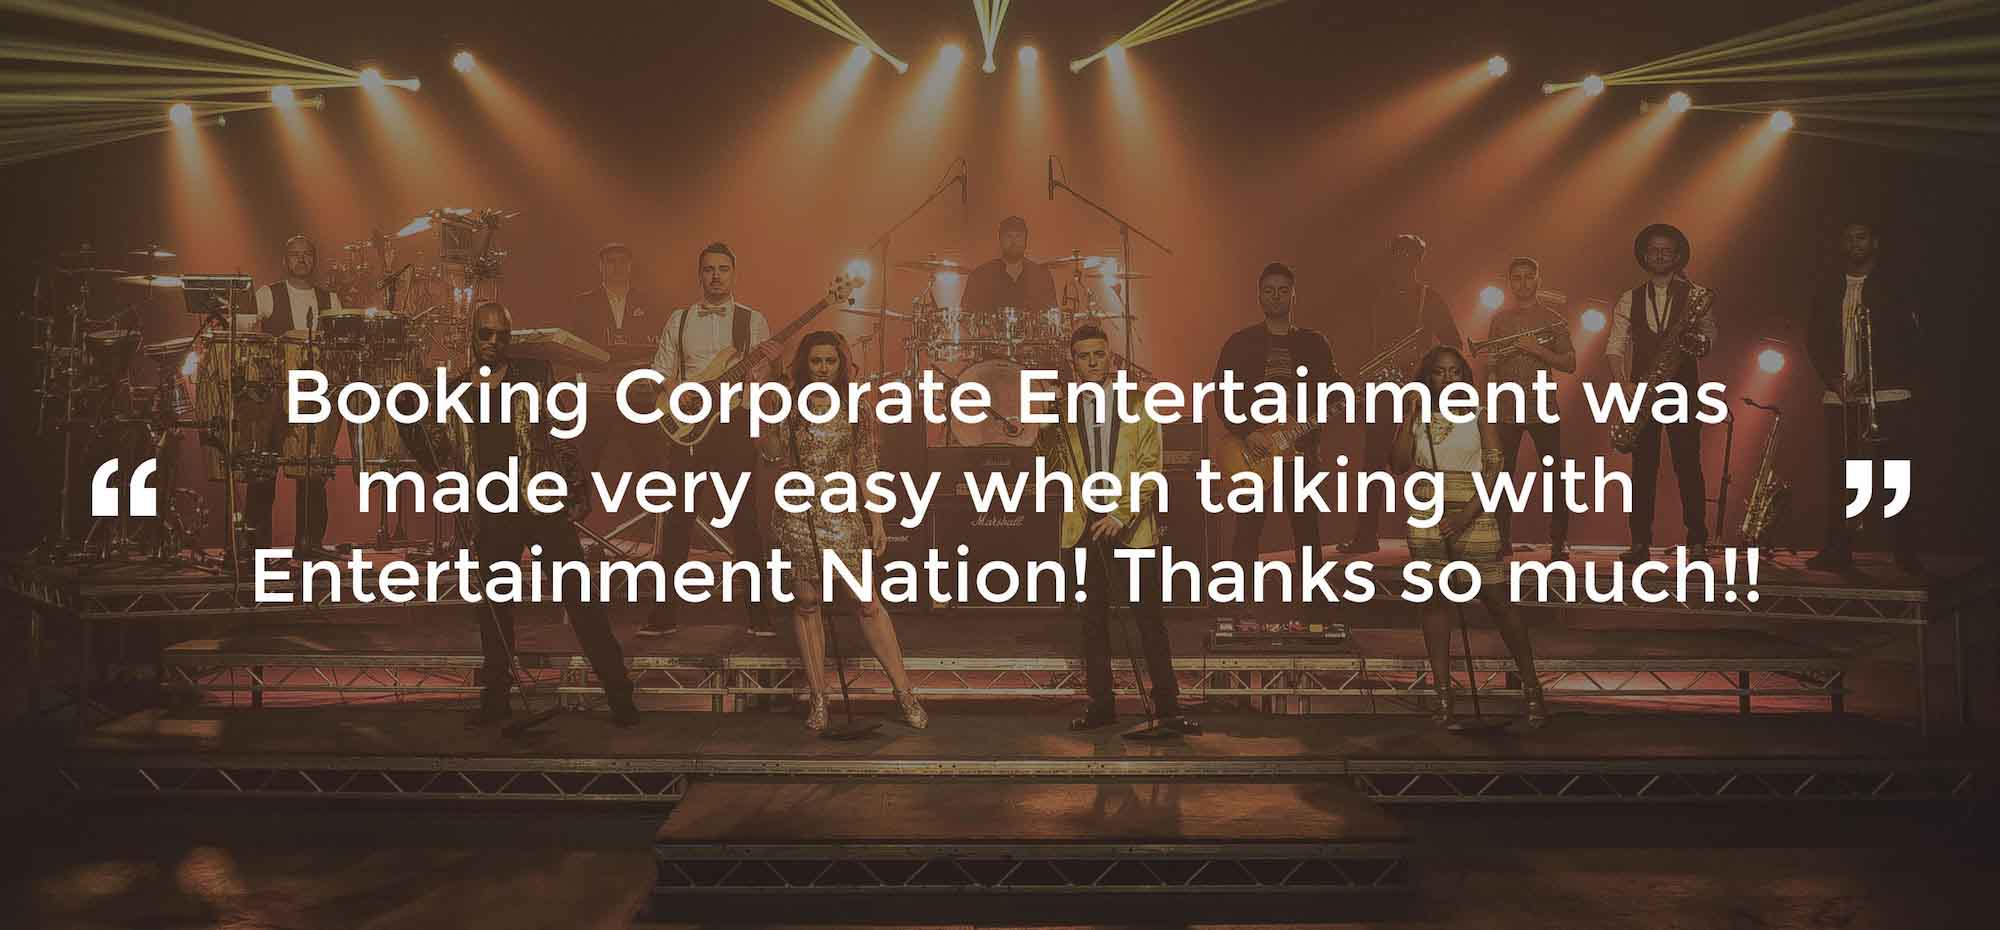 Review of Corporate Entertainment Birmingham